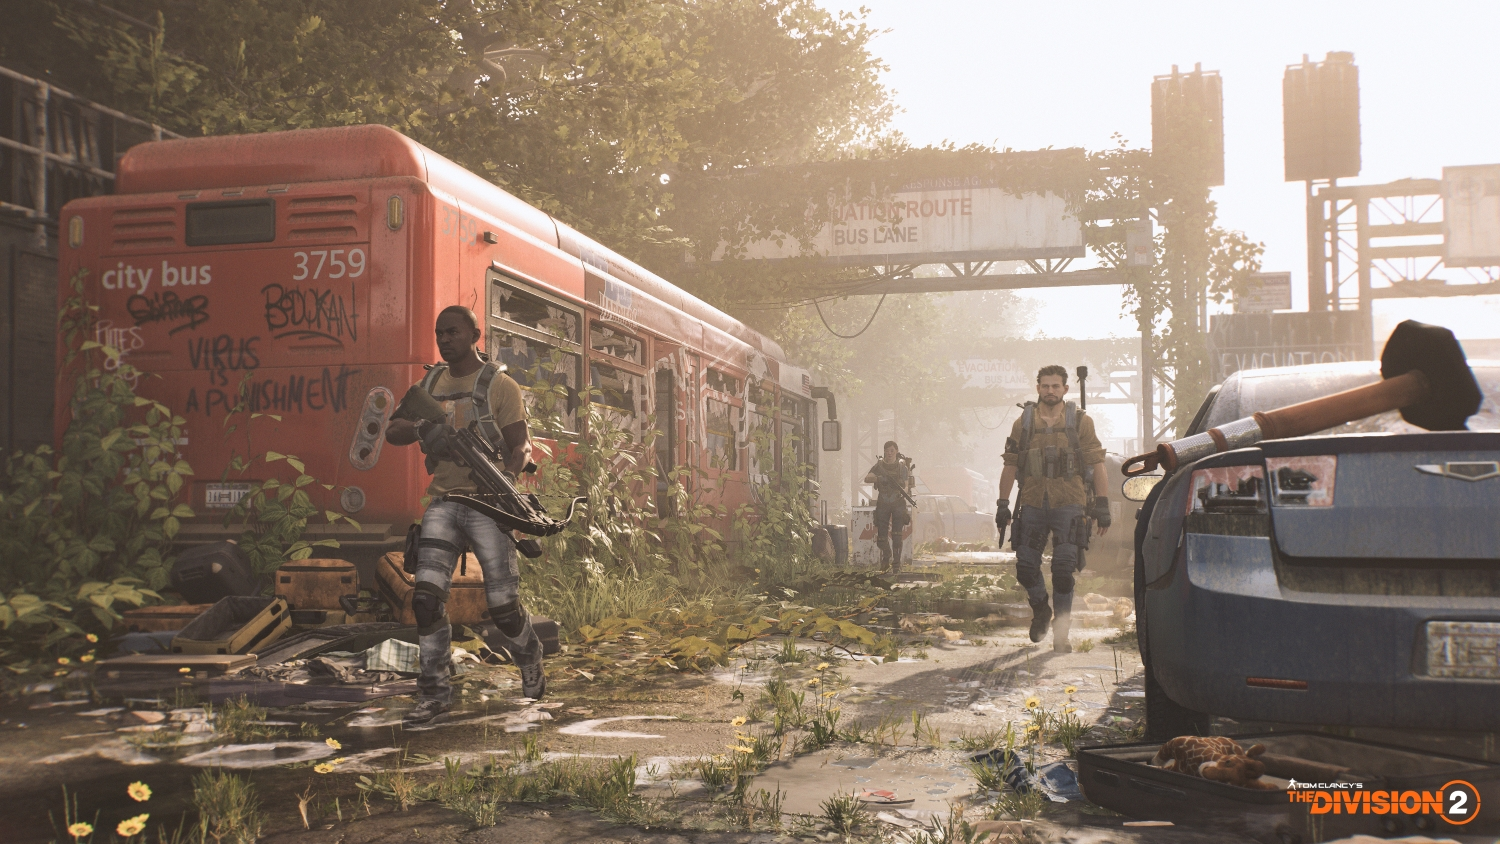 The Division 2 open beta impressions – when it starts and what it is